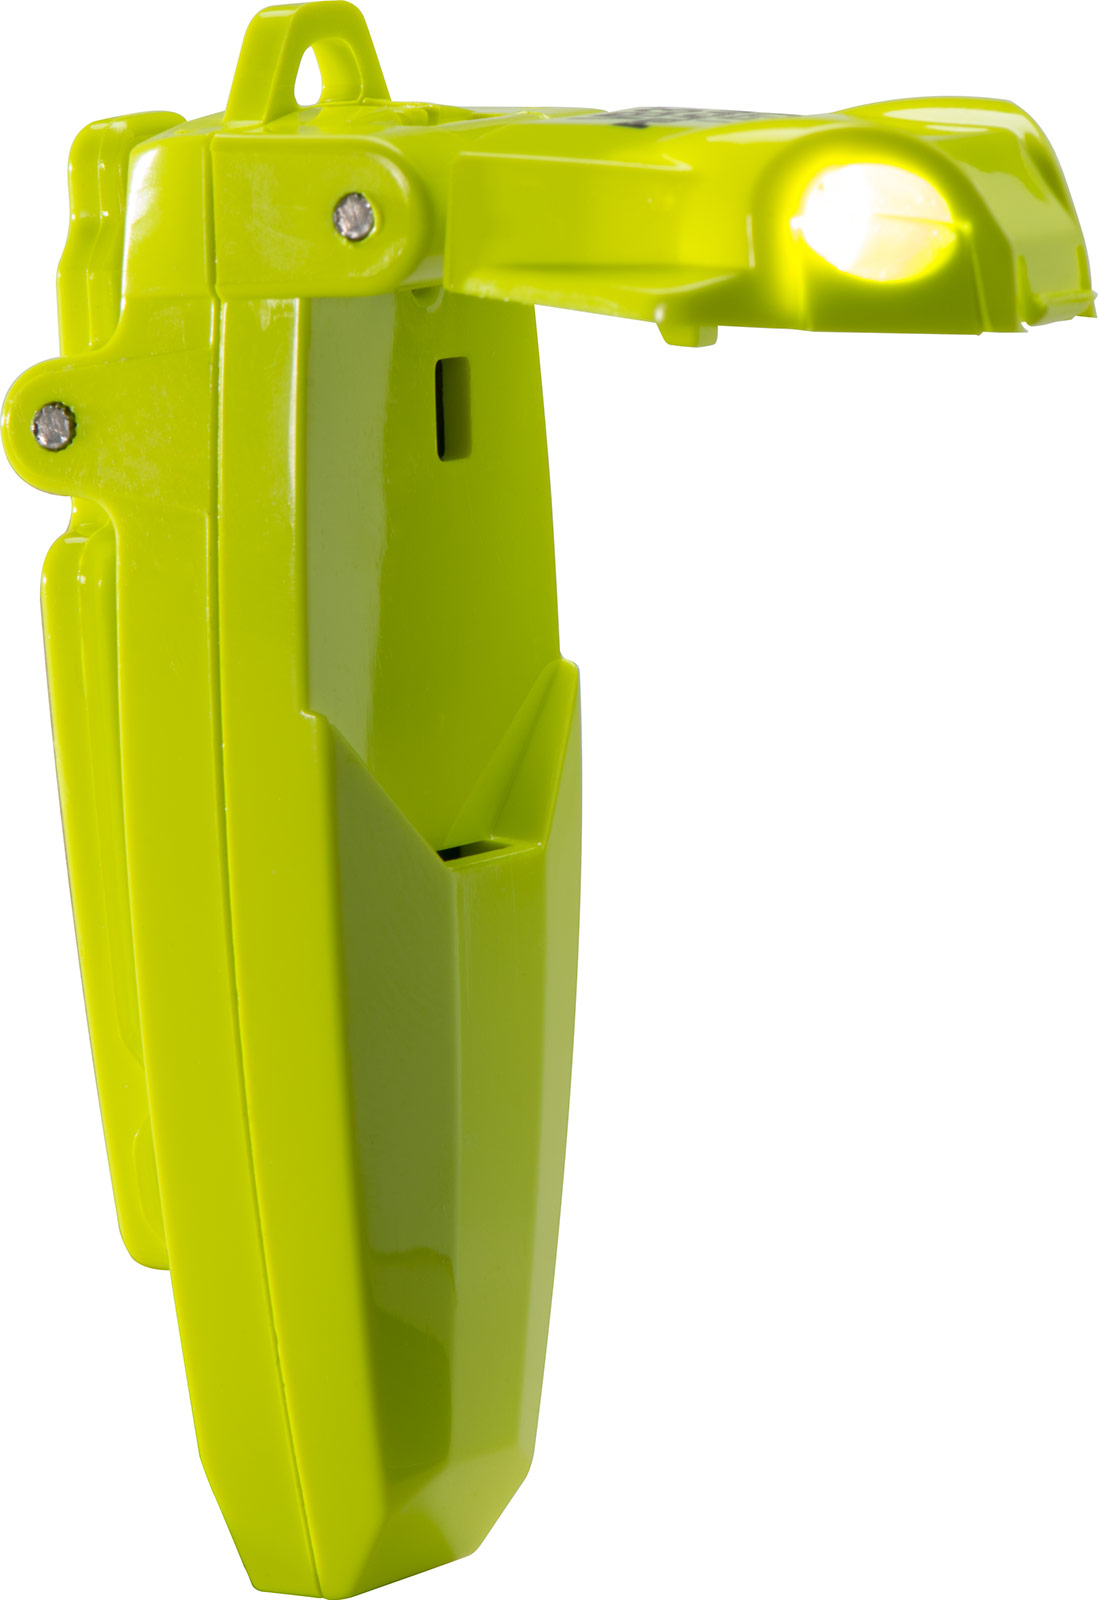 pelican 2220 vb3 yellow led light